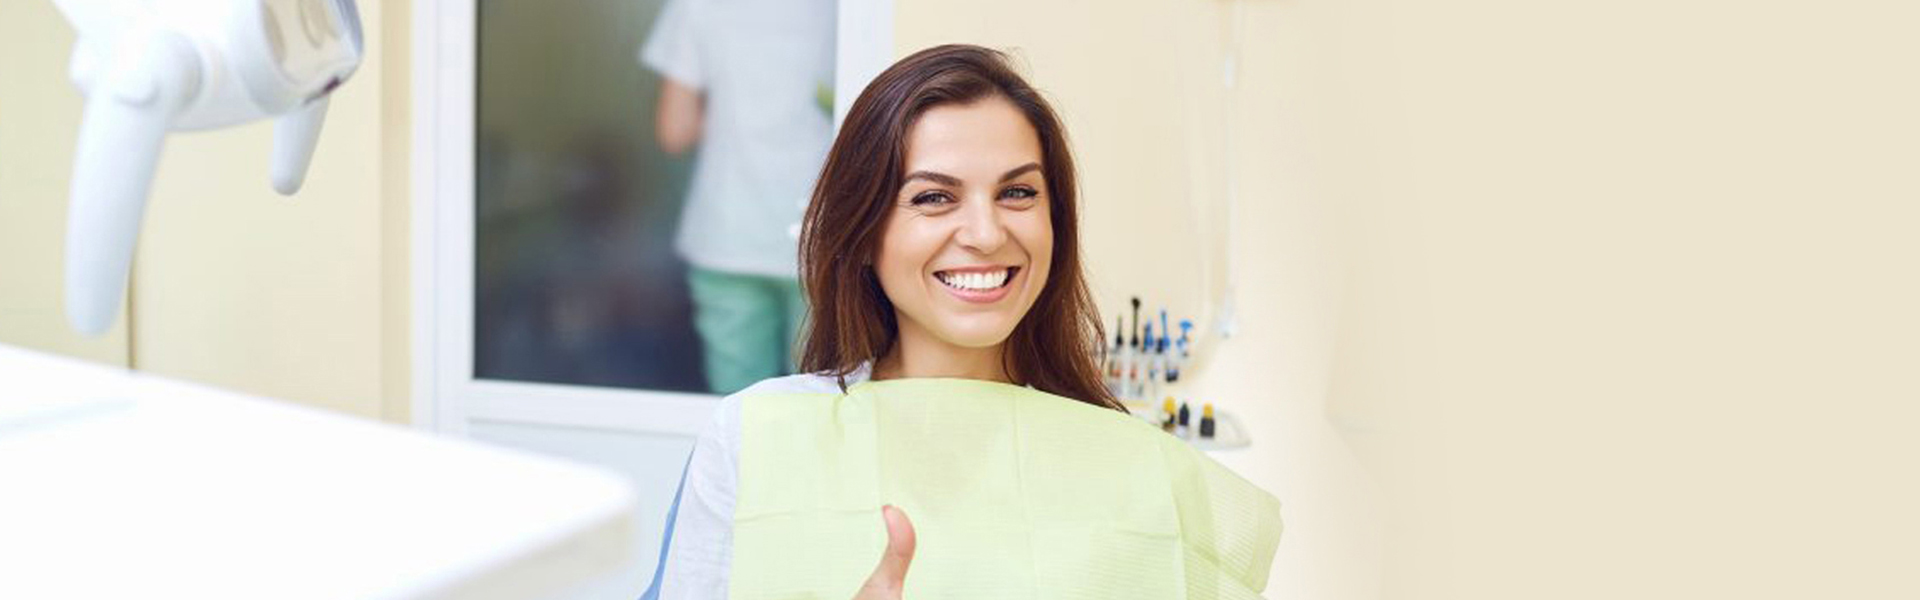 The Importance of Preventive Dentistry in Our Day-to-Day Life